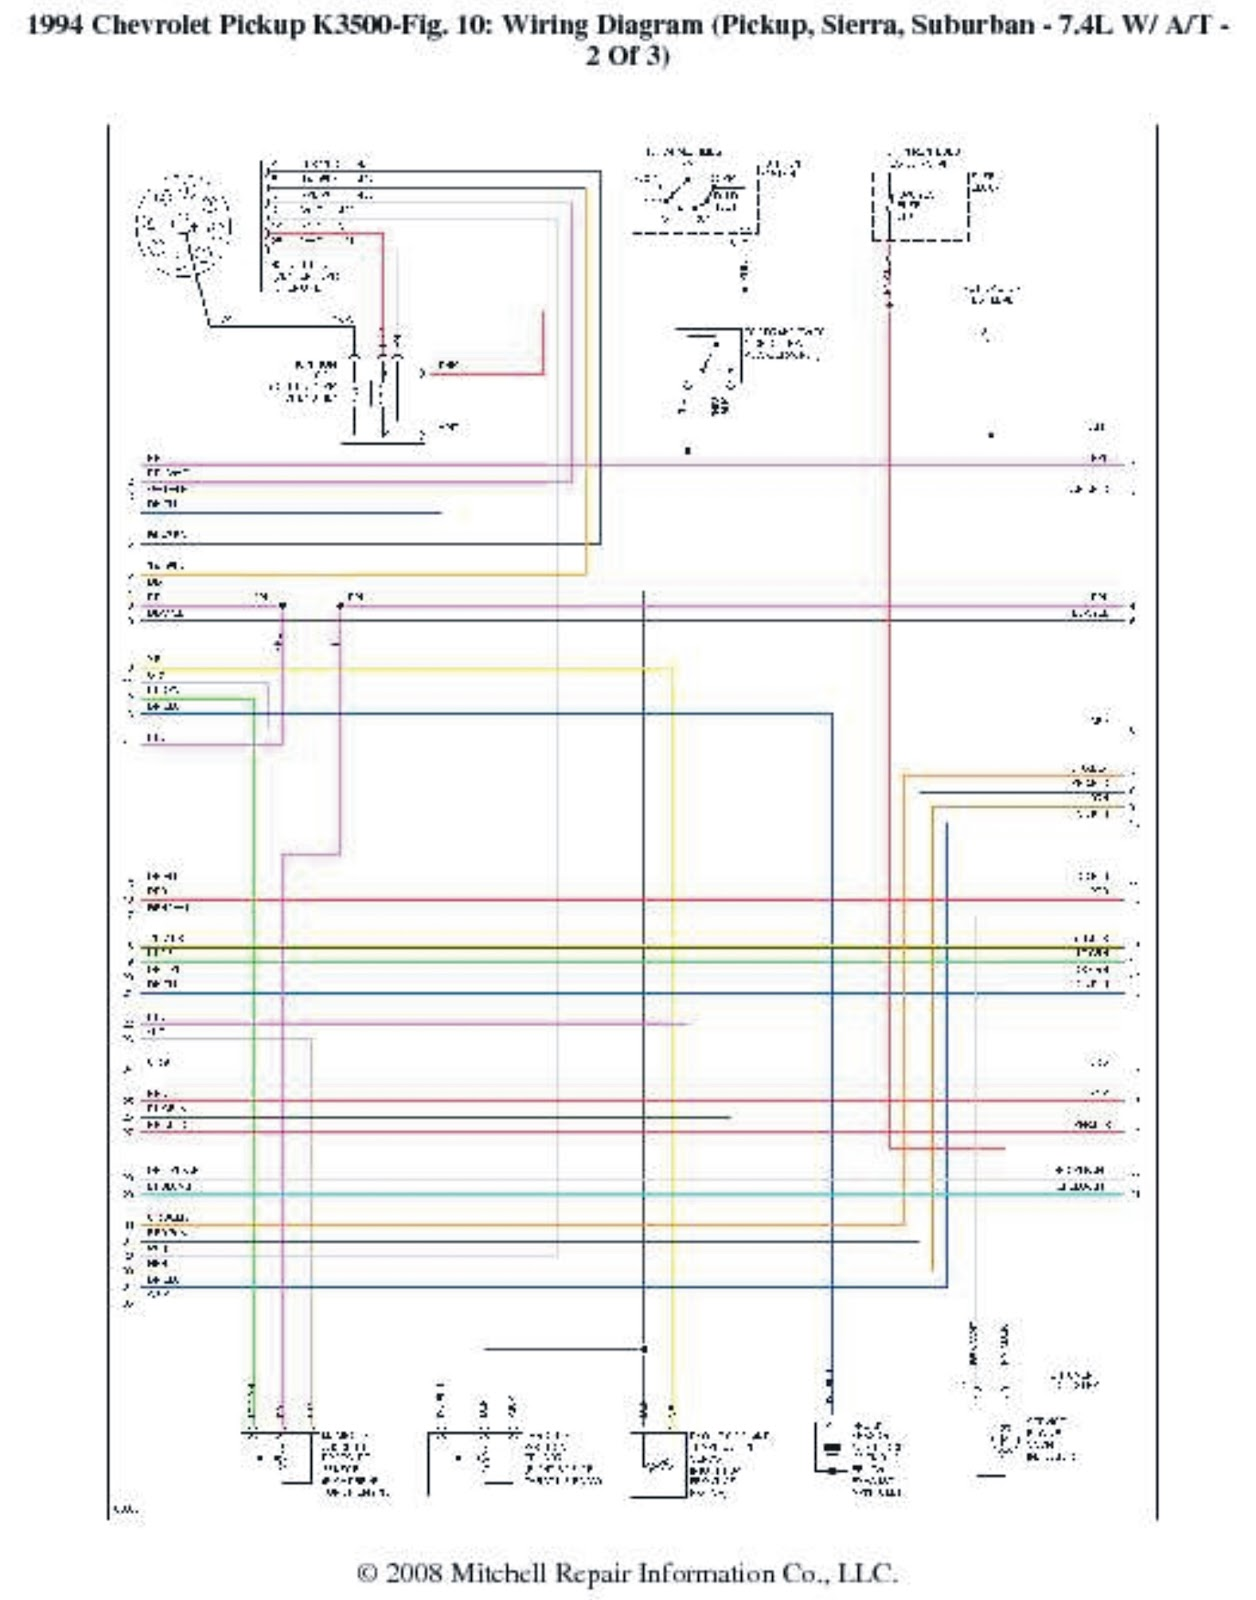 F1cd02665de9b24e6330b7b591529a11 moreover Dodge Caravan Fuse Box Location likewise Dodge Stratus Wiring Diagram furthermore 2005 Dodge Stratus Fuse Box likewise 98 Dodge Intrepid Wiring Diagram. on 95 dodge stratus wiring diagrams